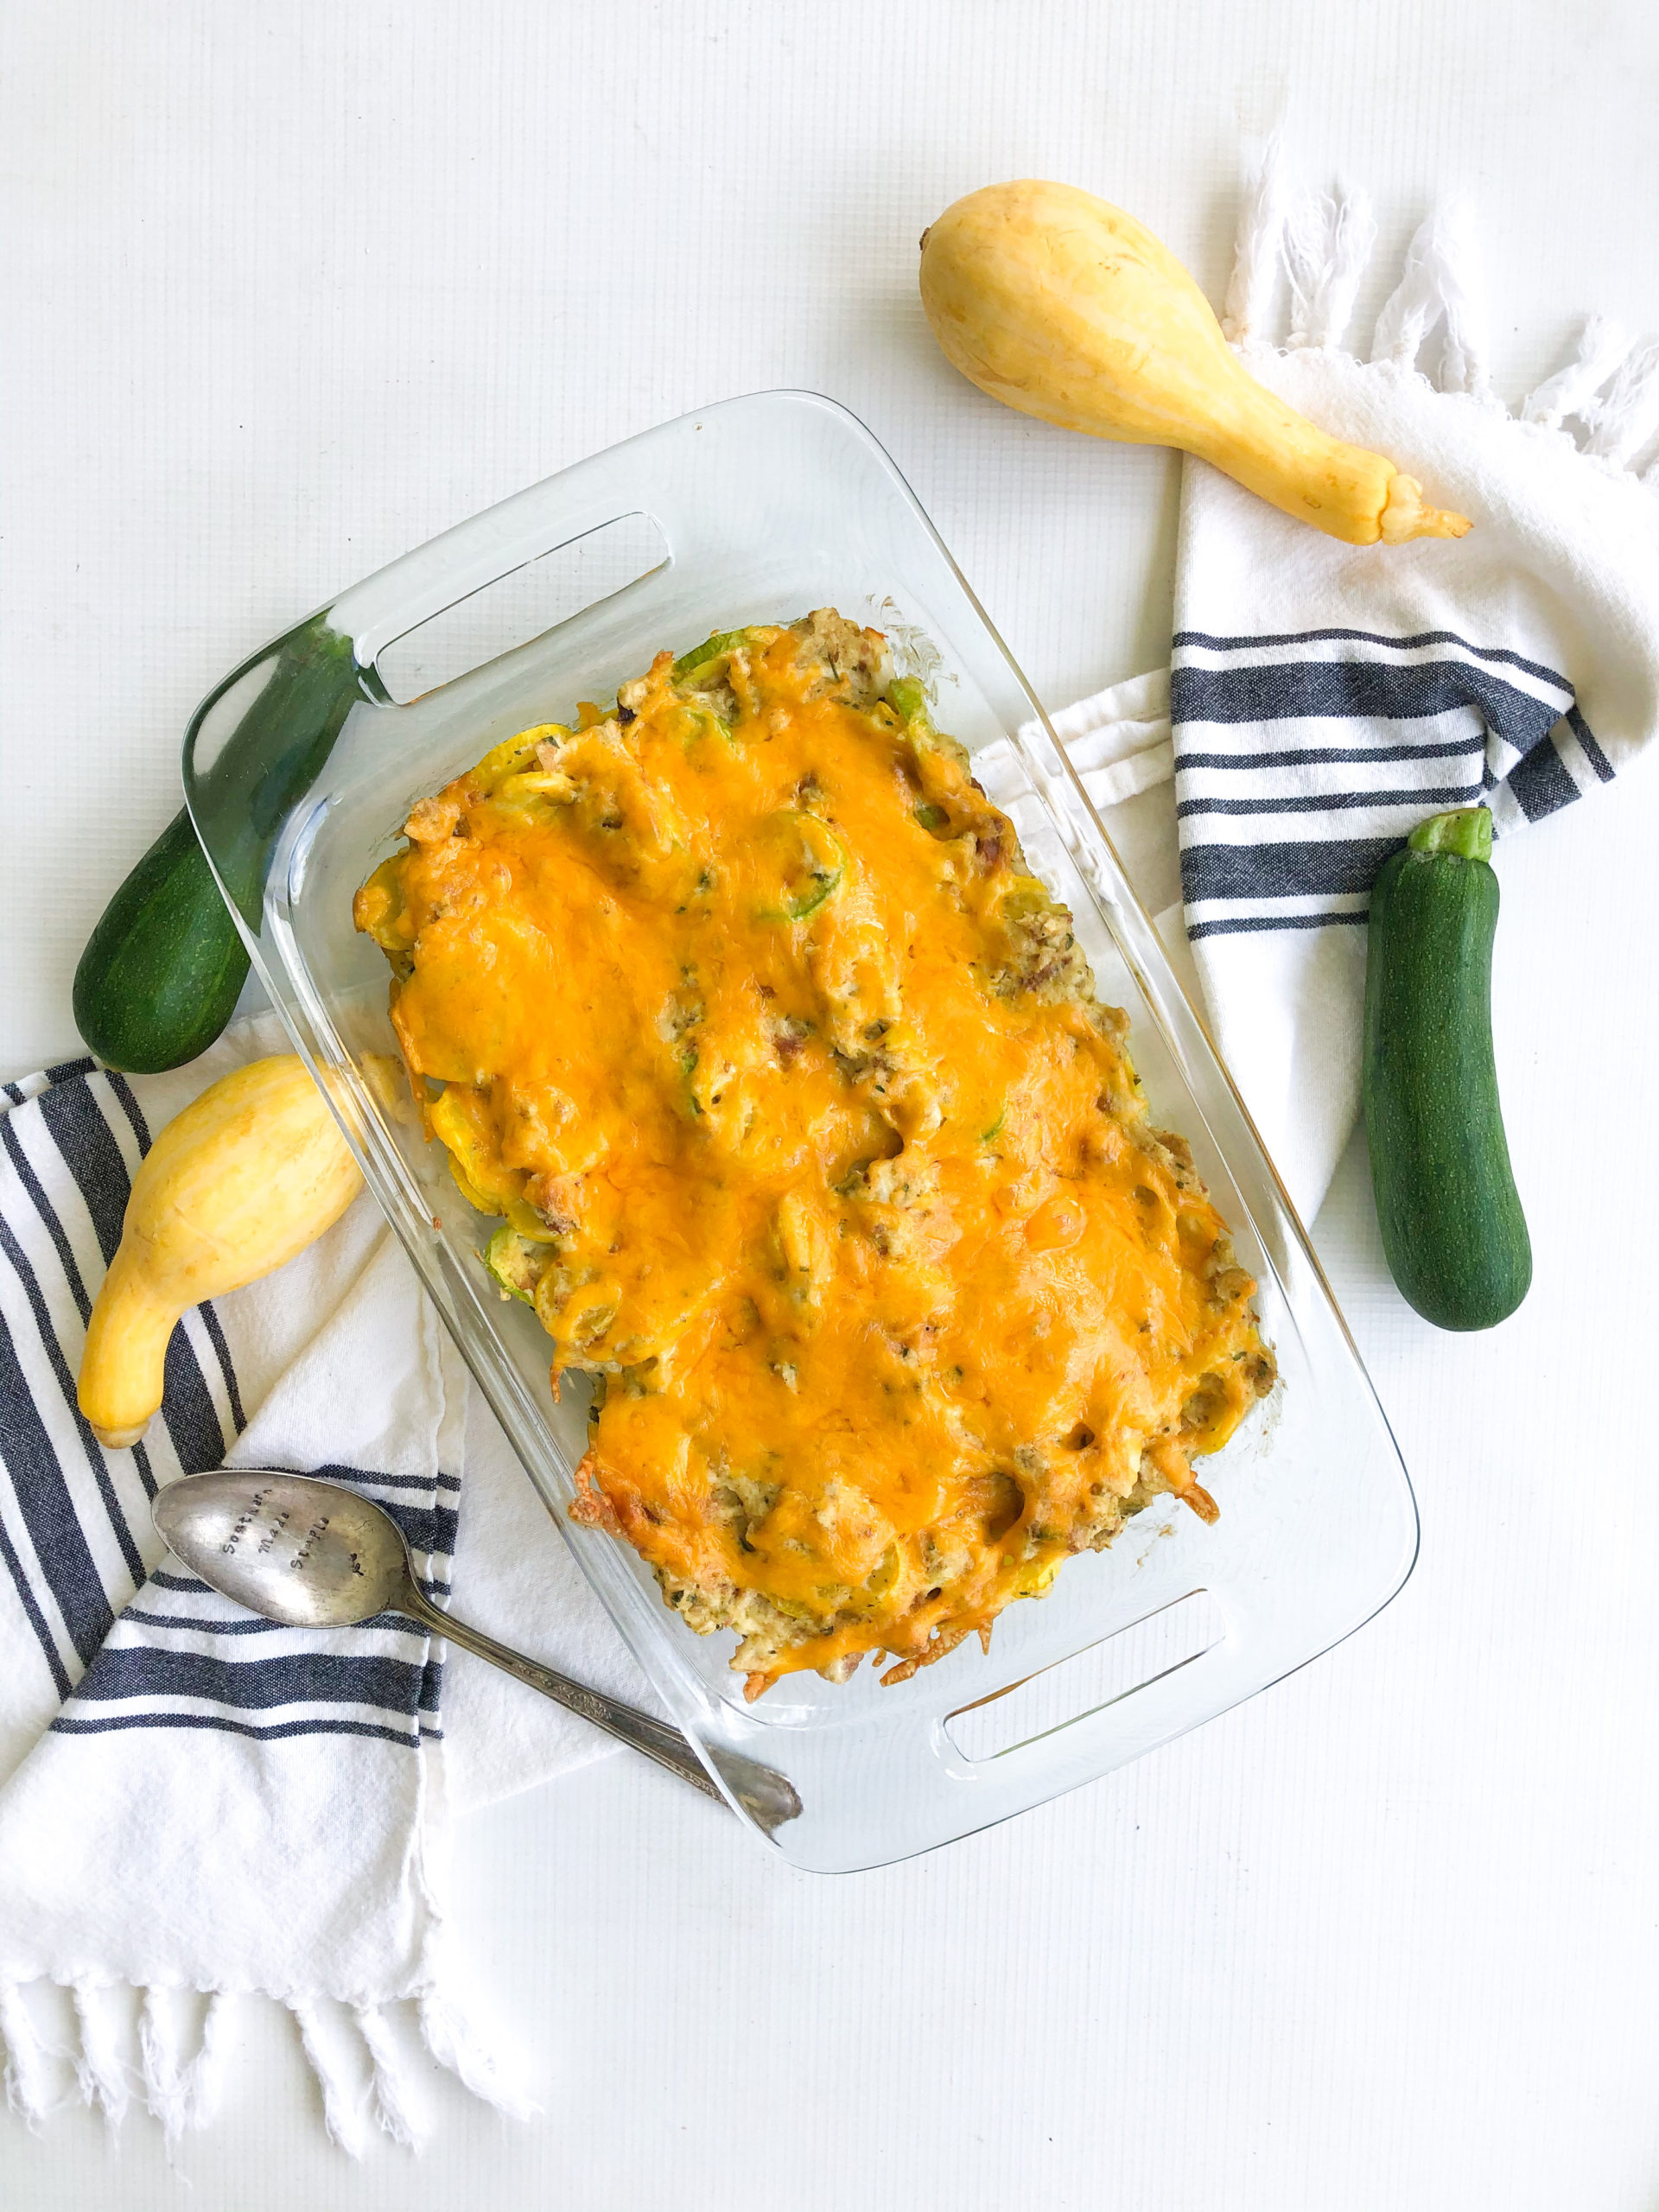 Squash and Zucchini Stuffing Casserole